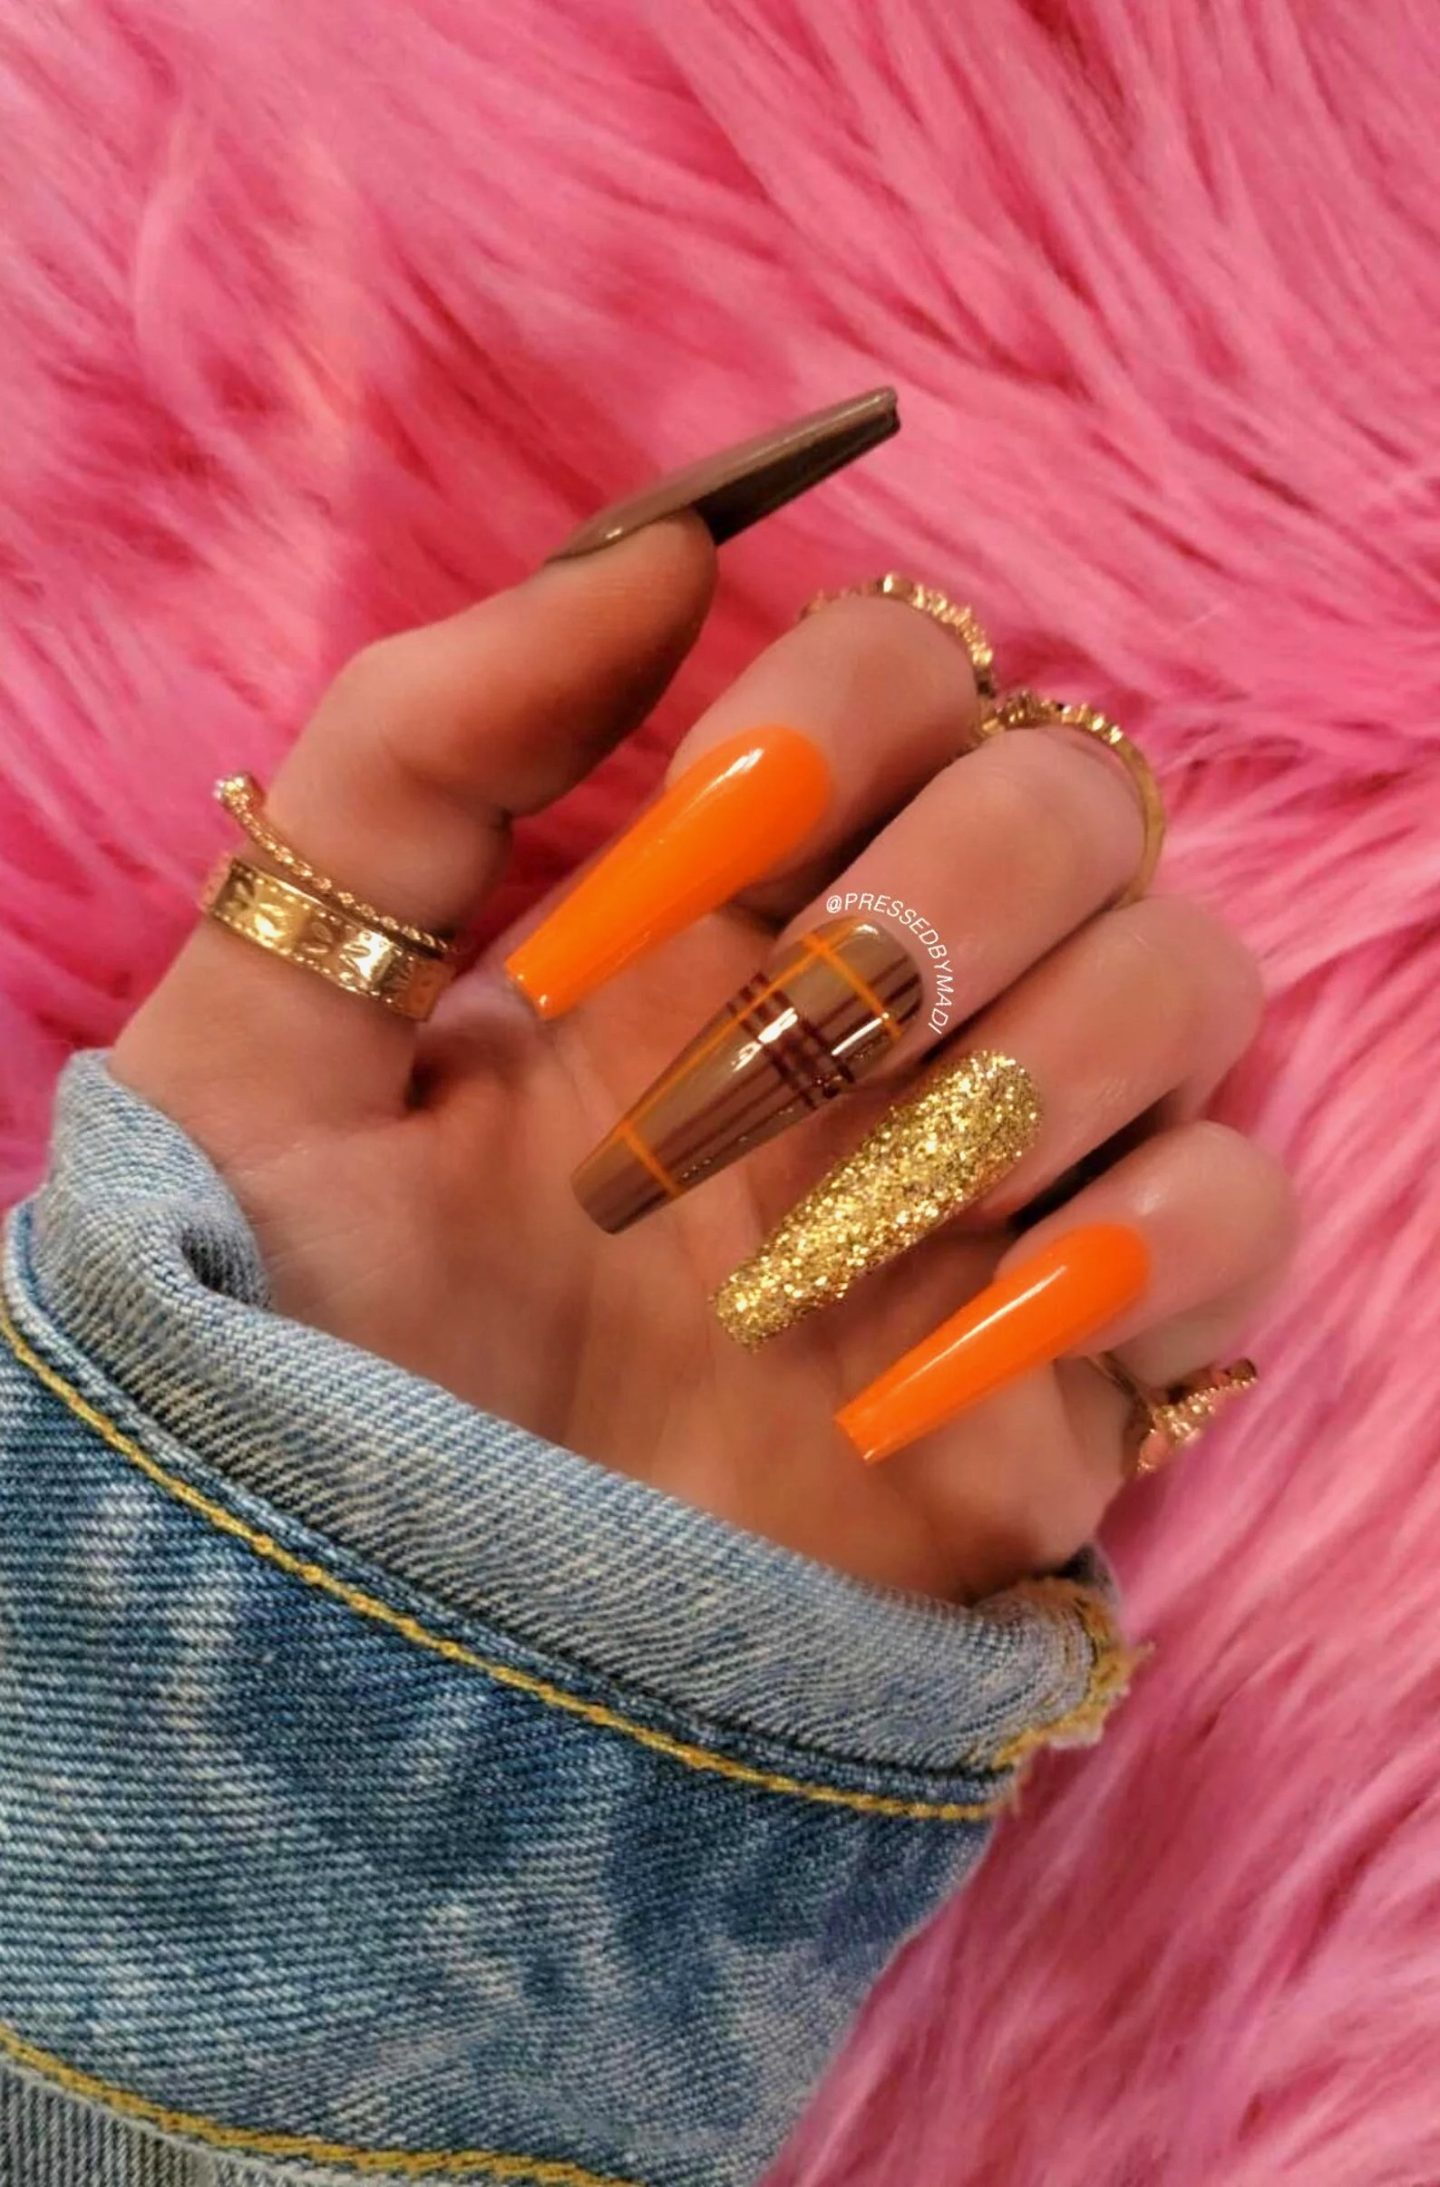 Orange and brown plaid nails with gold glitter